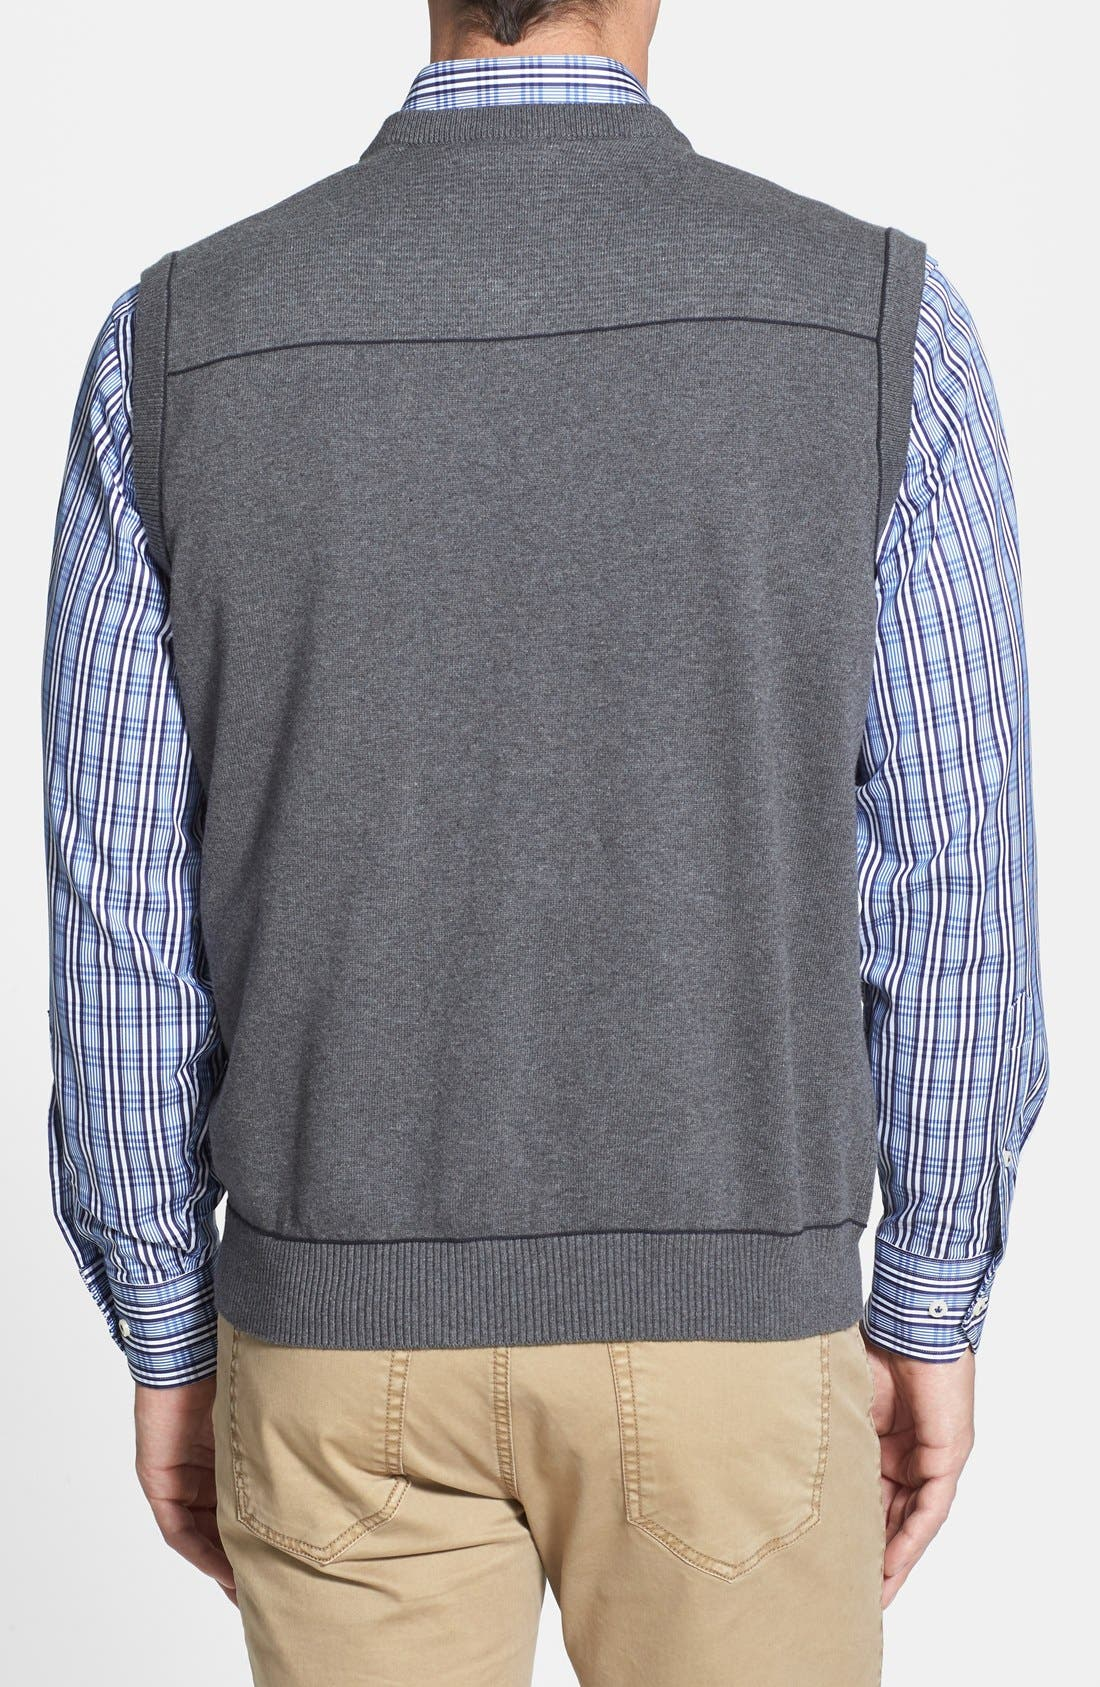 Broadview V-Neck Sweater Vest,                             Alternate thumbnail 2, color,                             CHARCOAL HEATHER